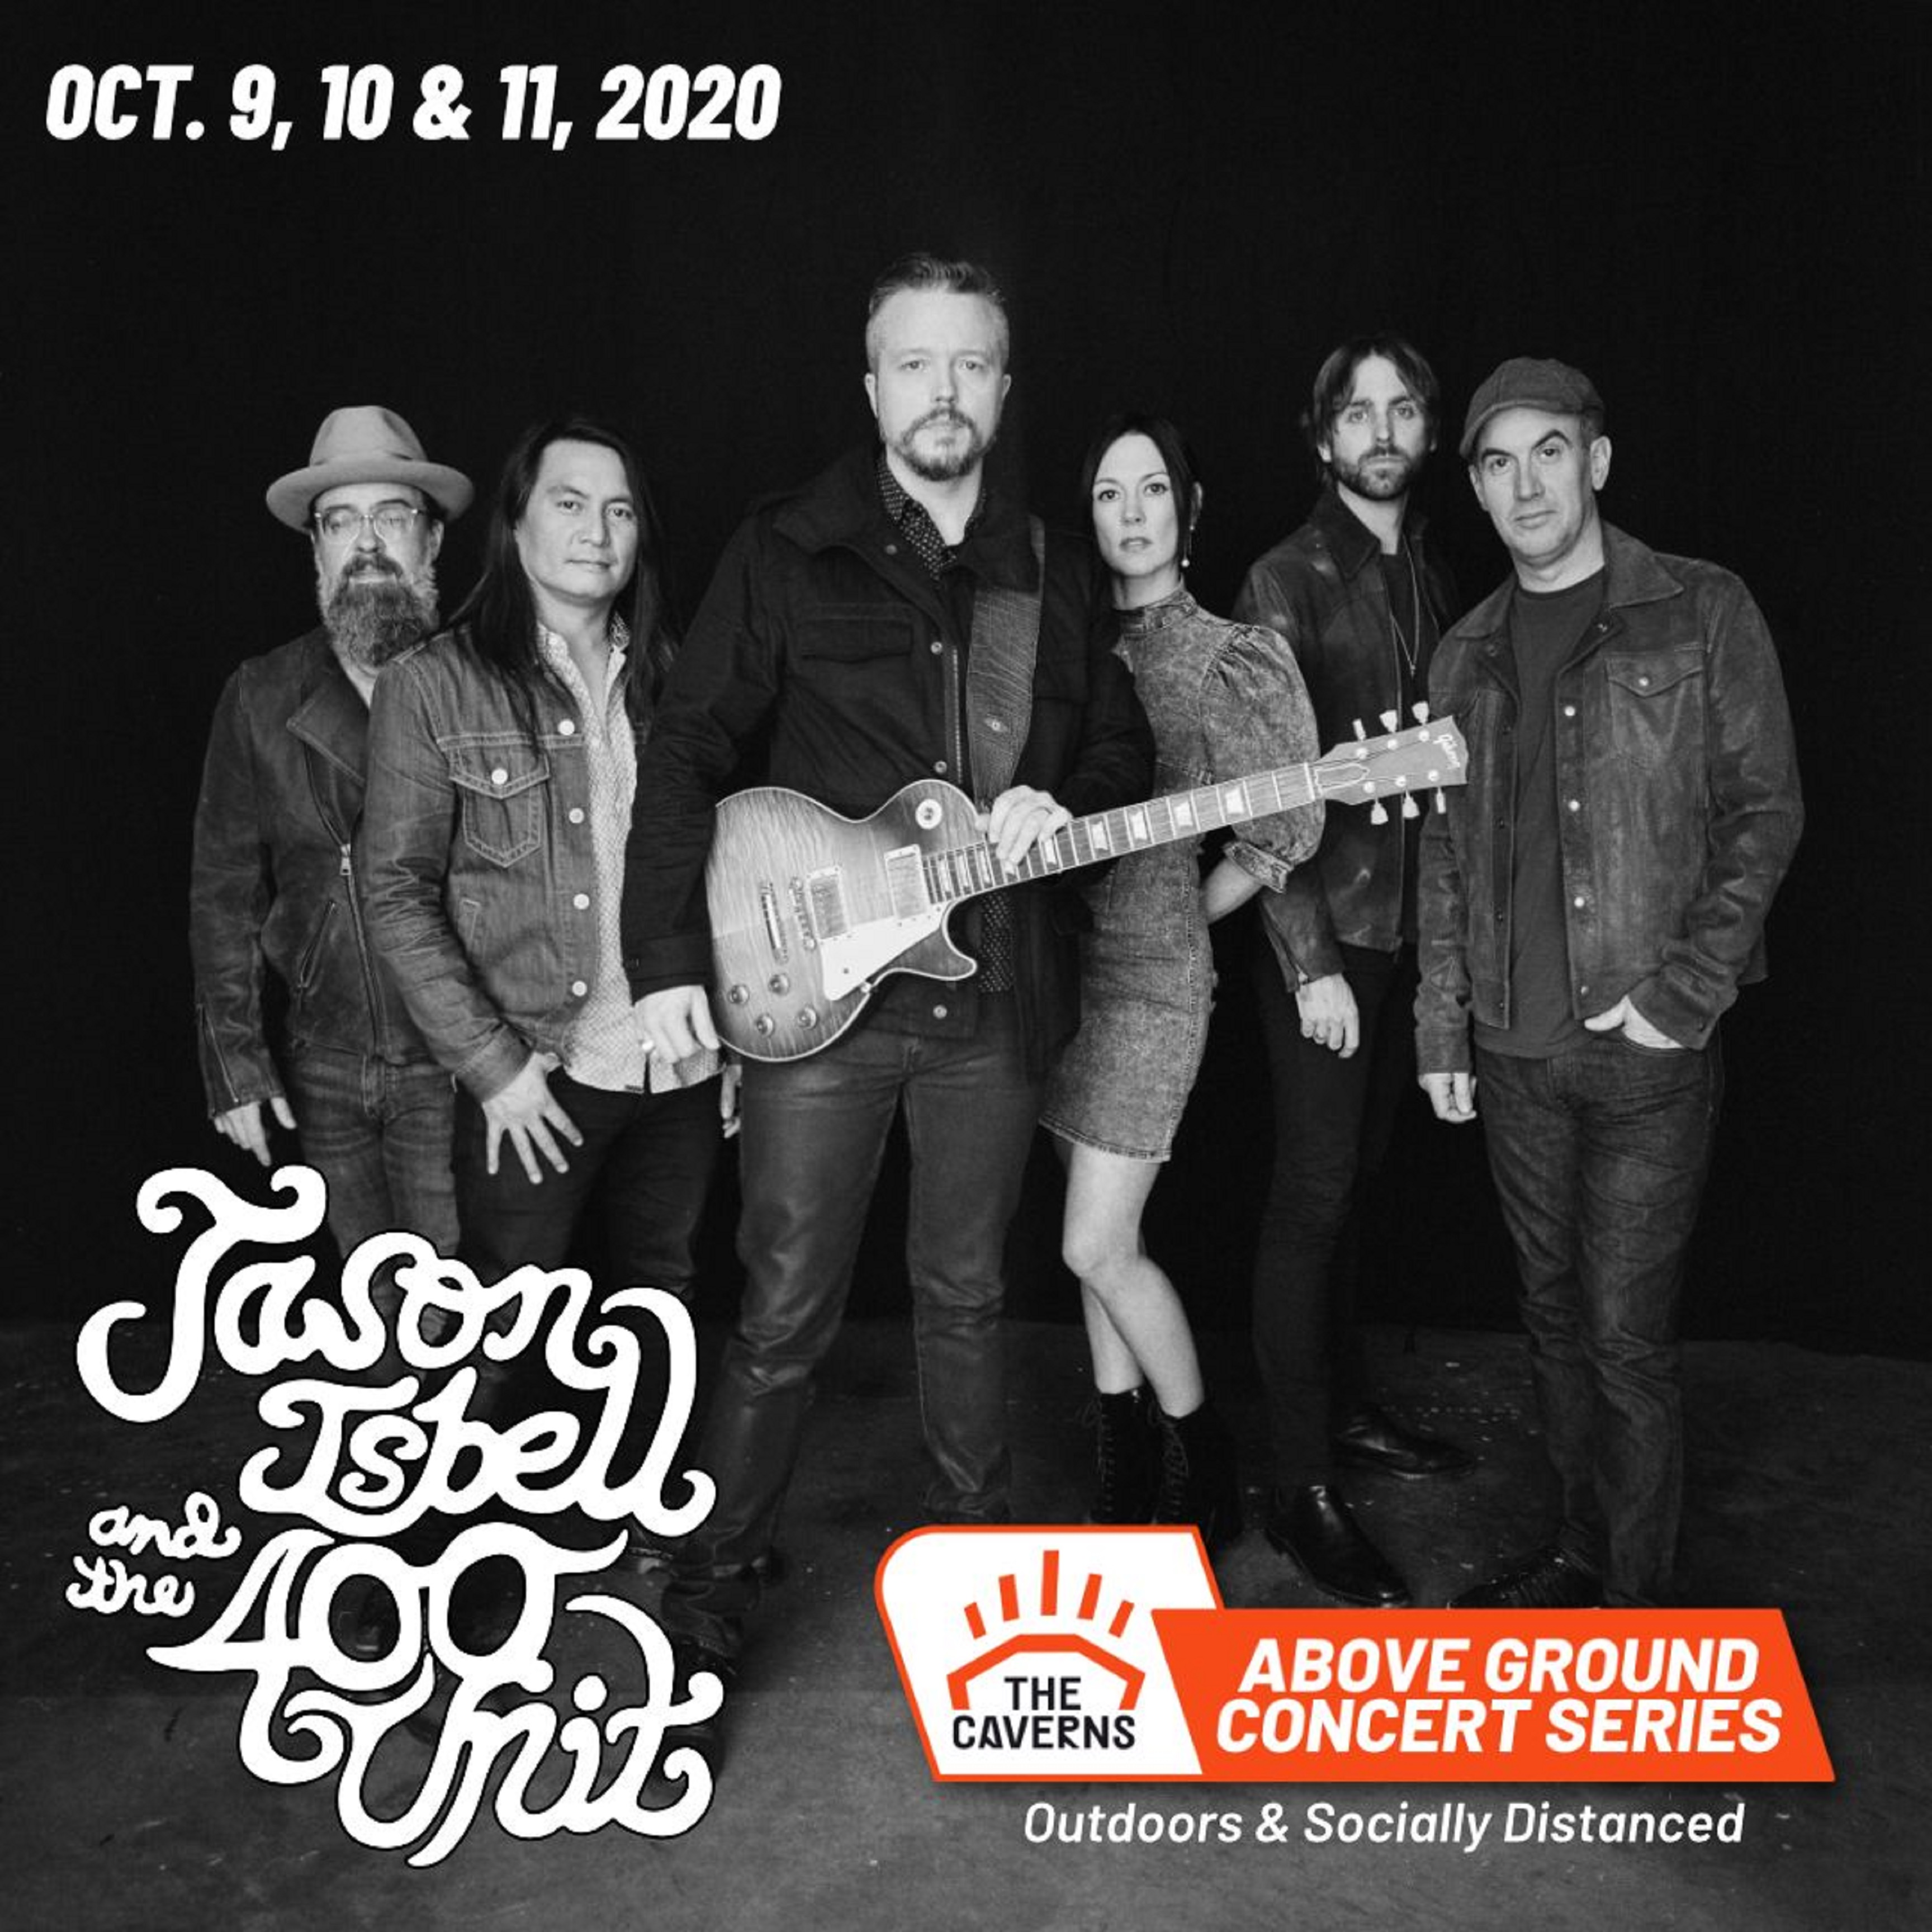 Jason Isbell and The 400 Unit - Outdoors & Socially Distanced at The Caverns